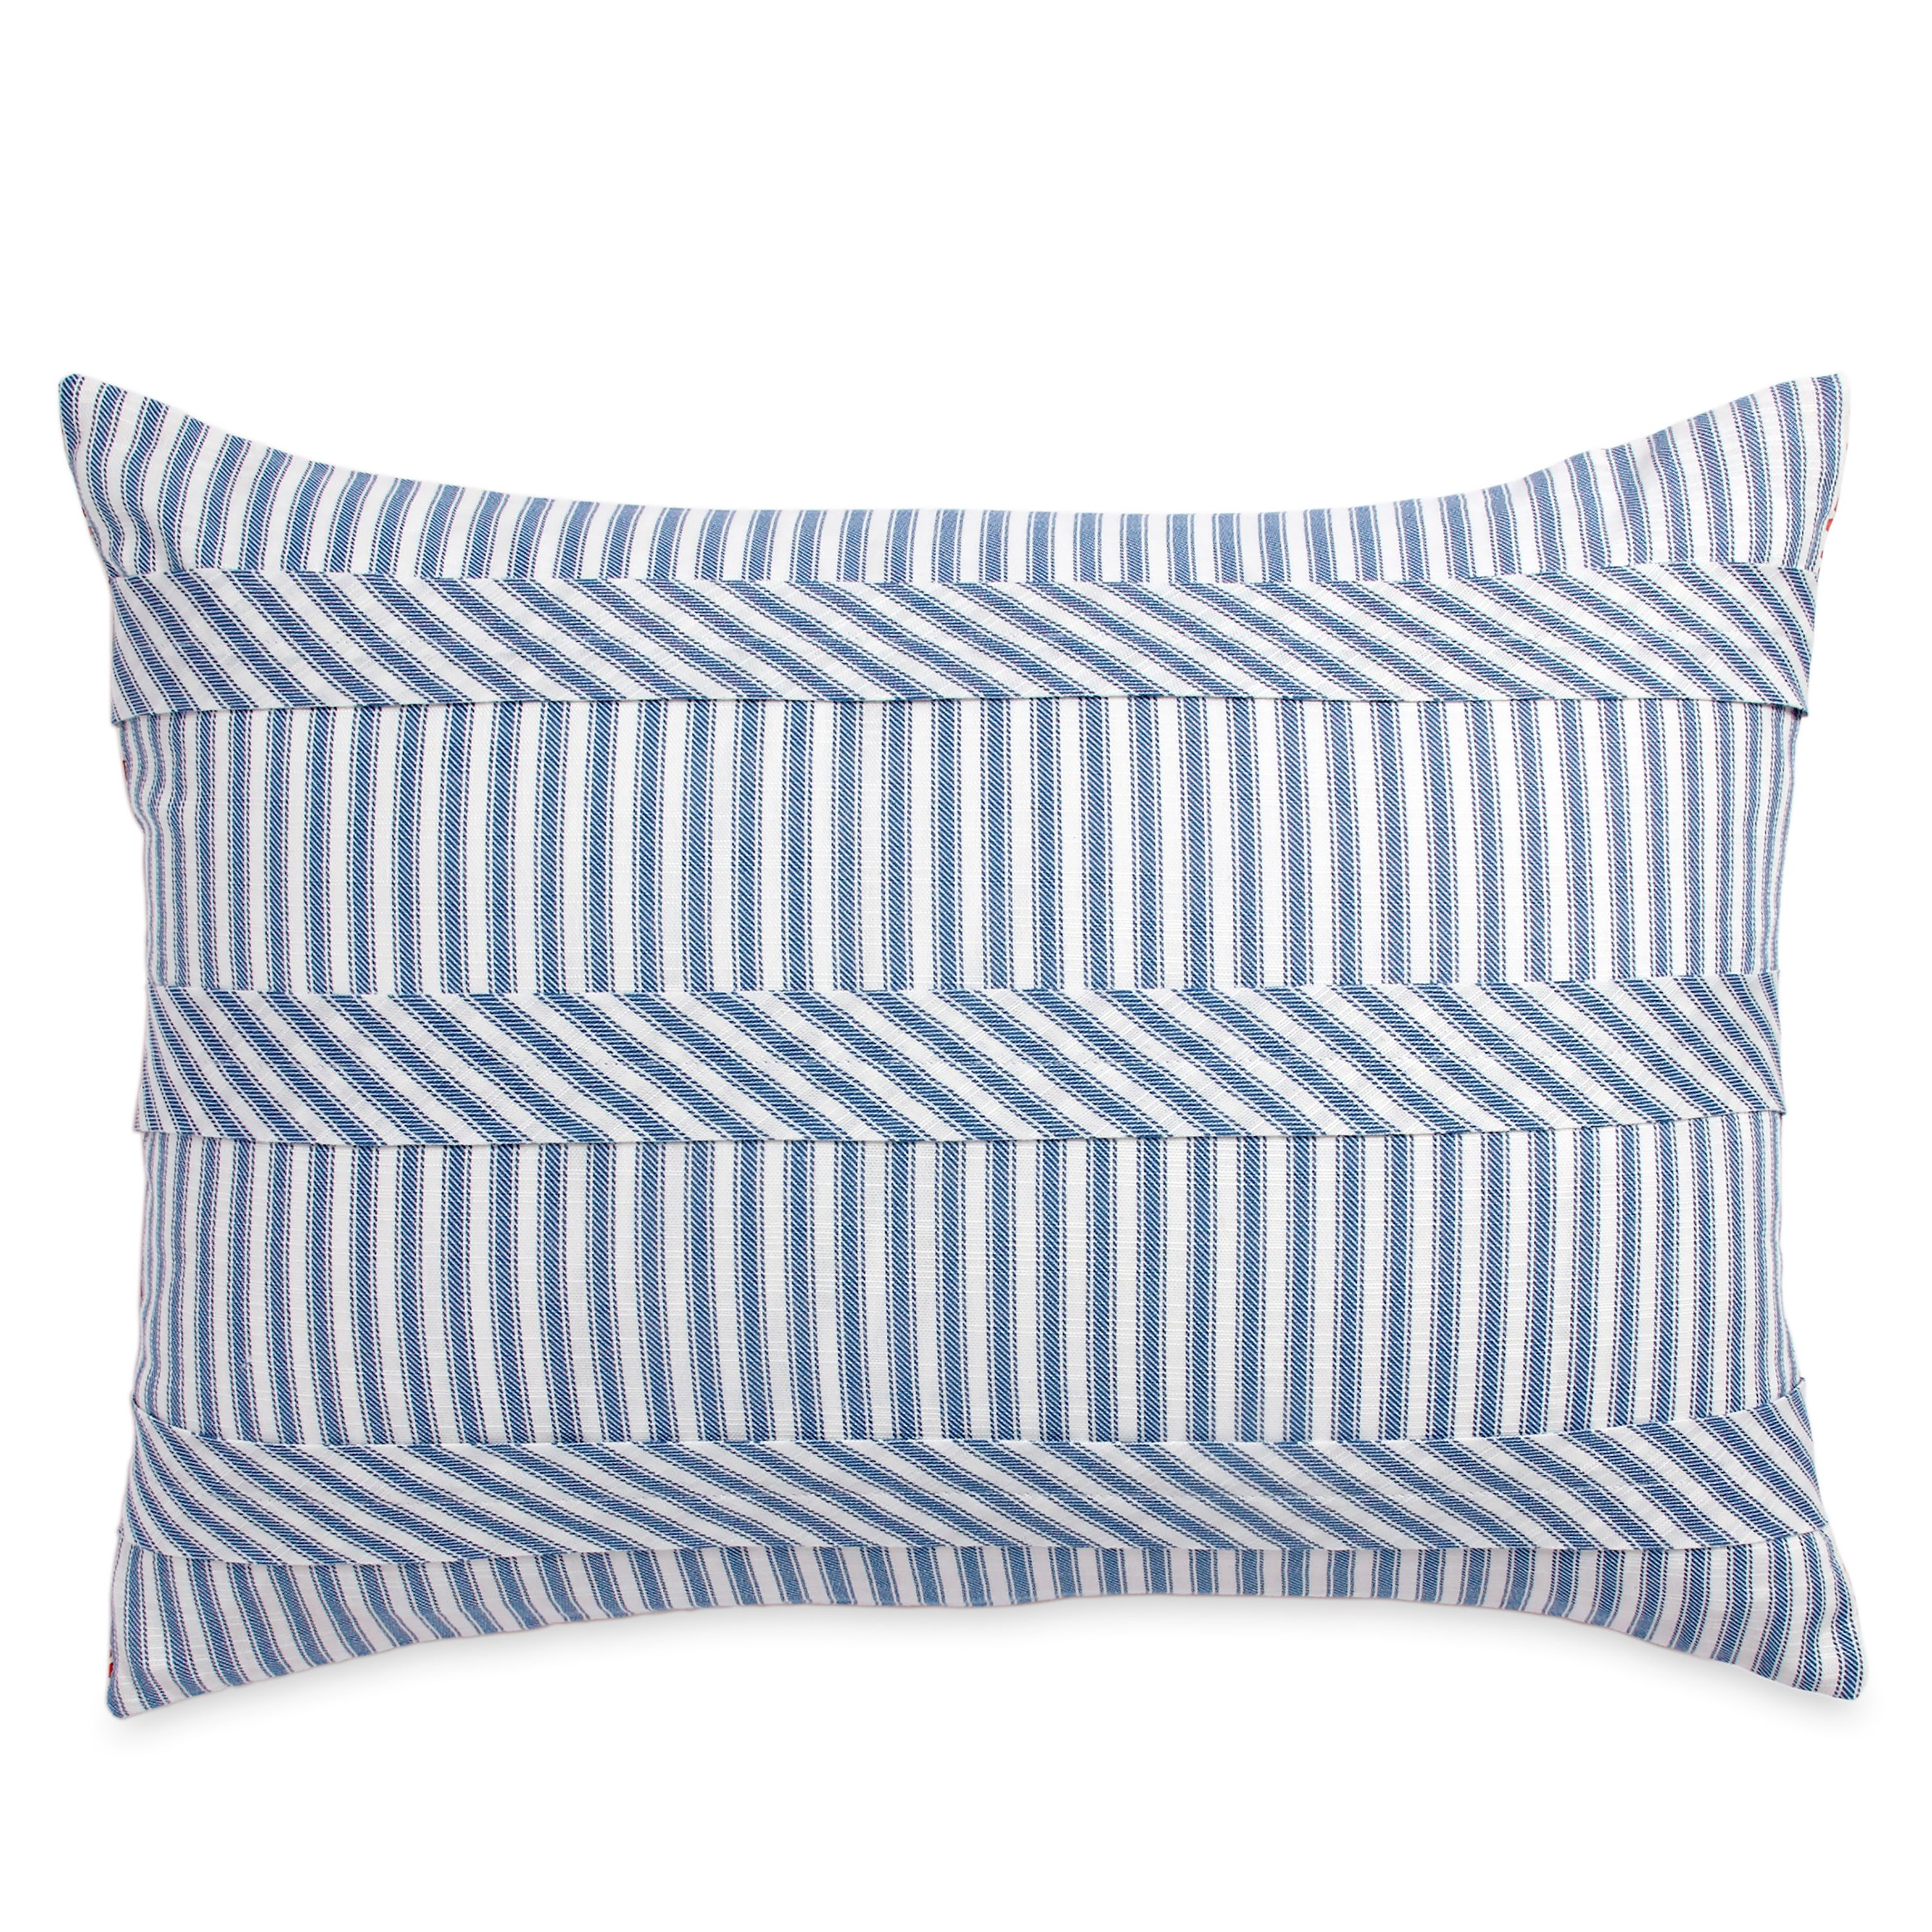 The Pioneer Woman Ticking Stripe Sham Set, Blue